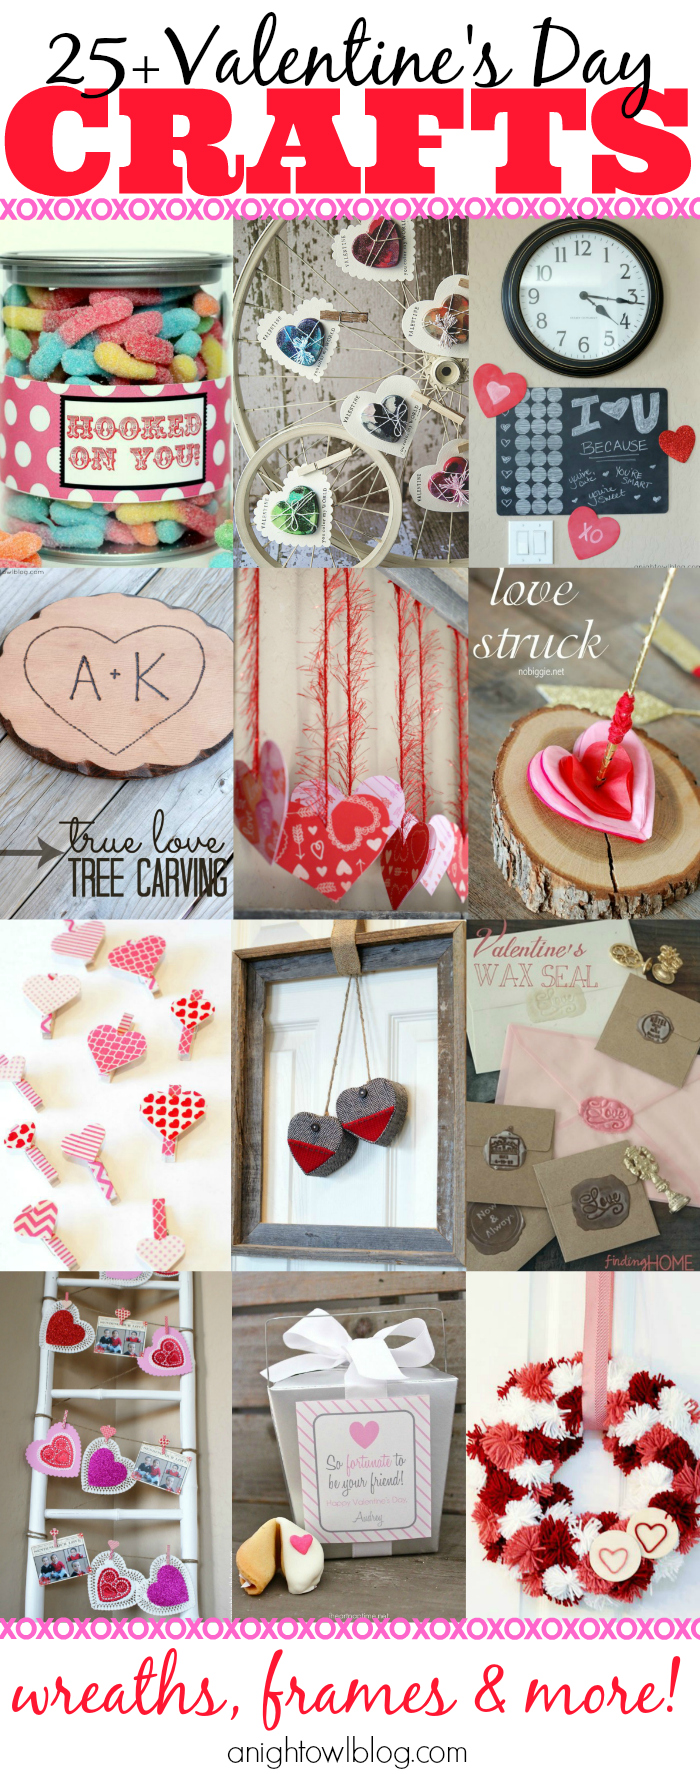 Looking for craft and decor inspiration this holiday season? Look no further! Here are 25+ Valentine's Day Crafts you're sure to love!